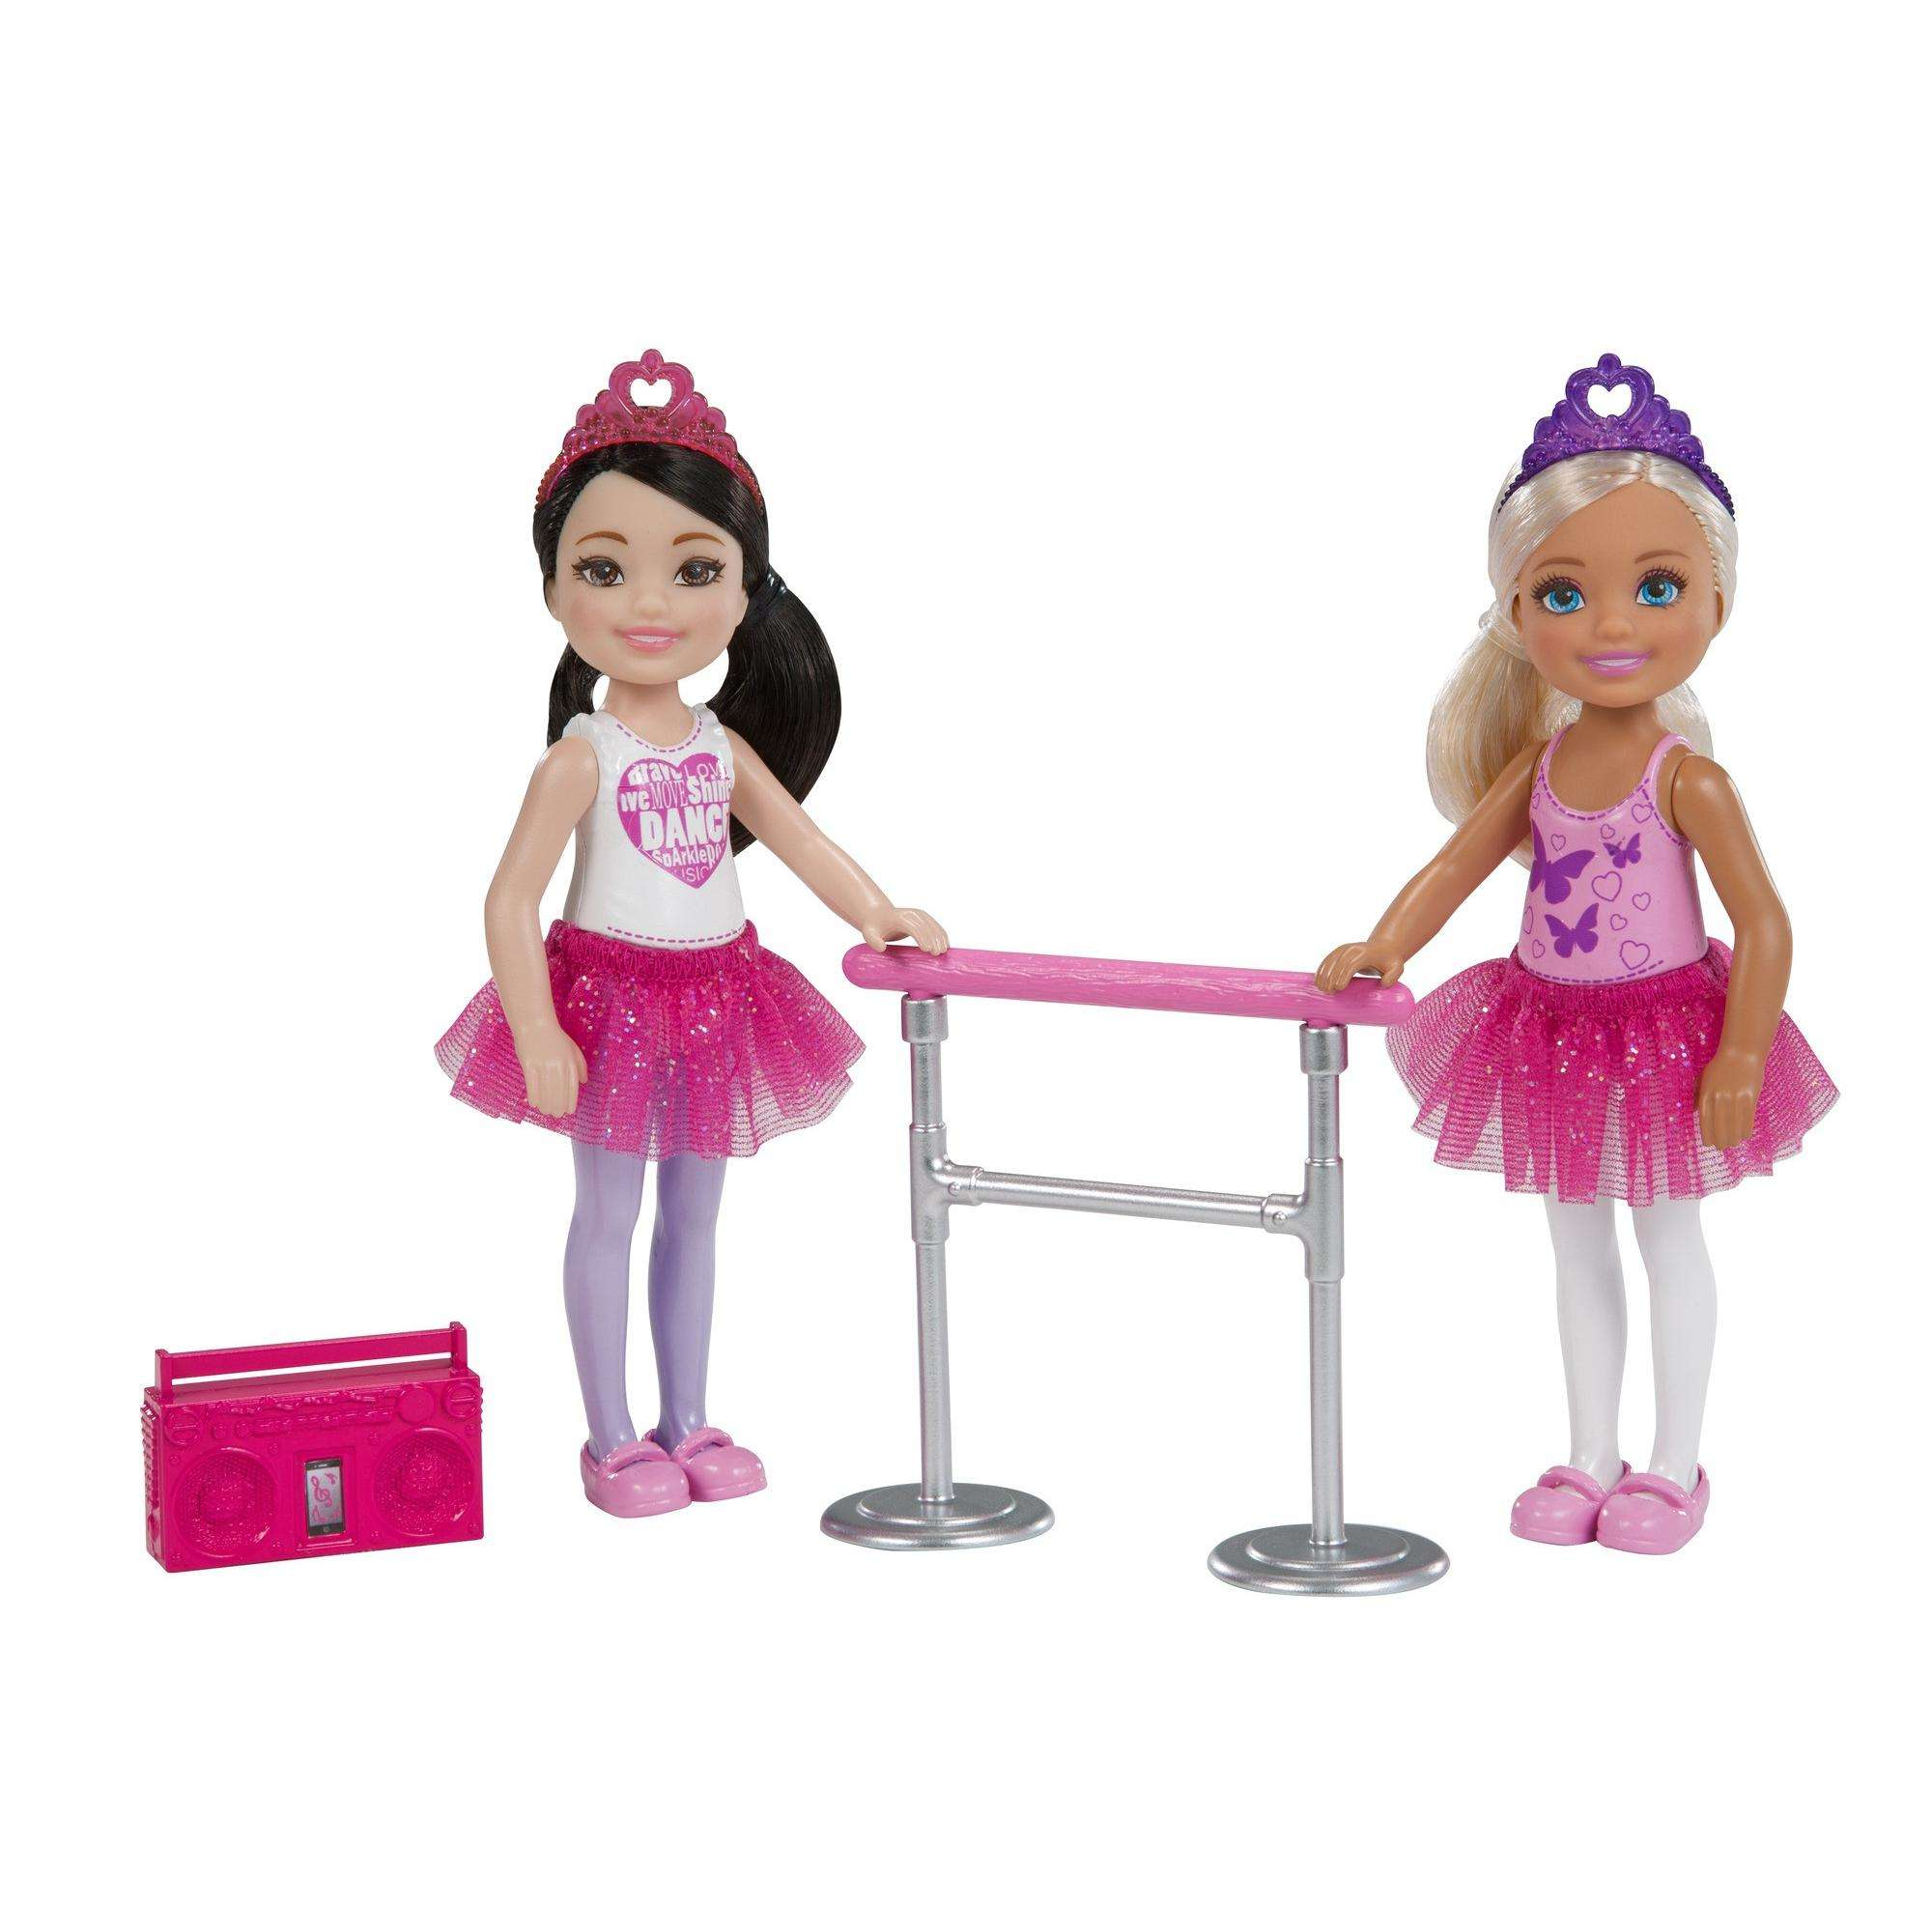 Barbie Club Chelsea Dance Playset with 2 Chelsea Dolls